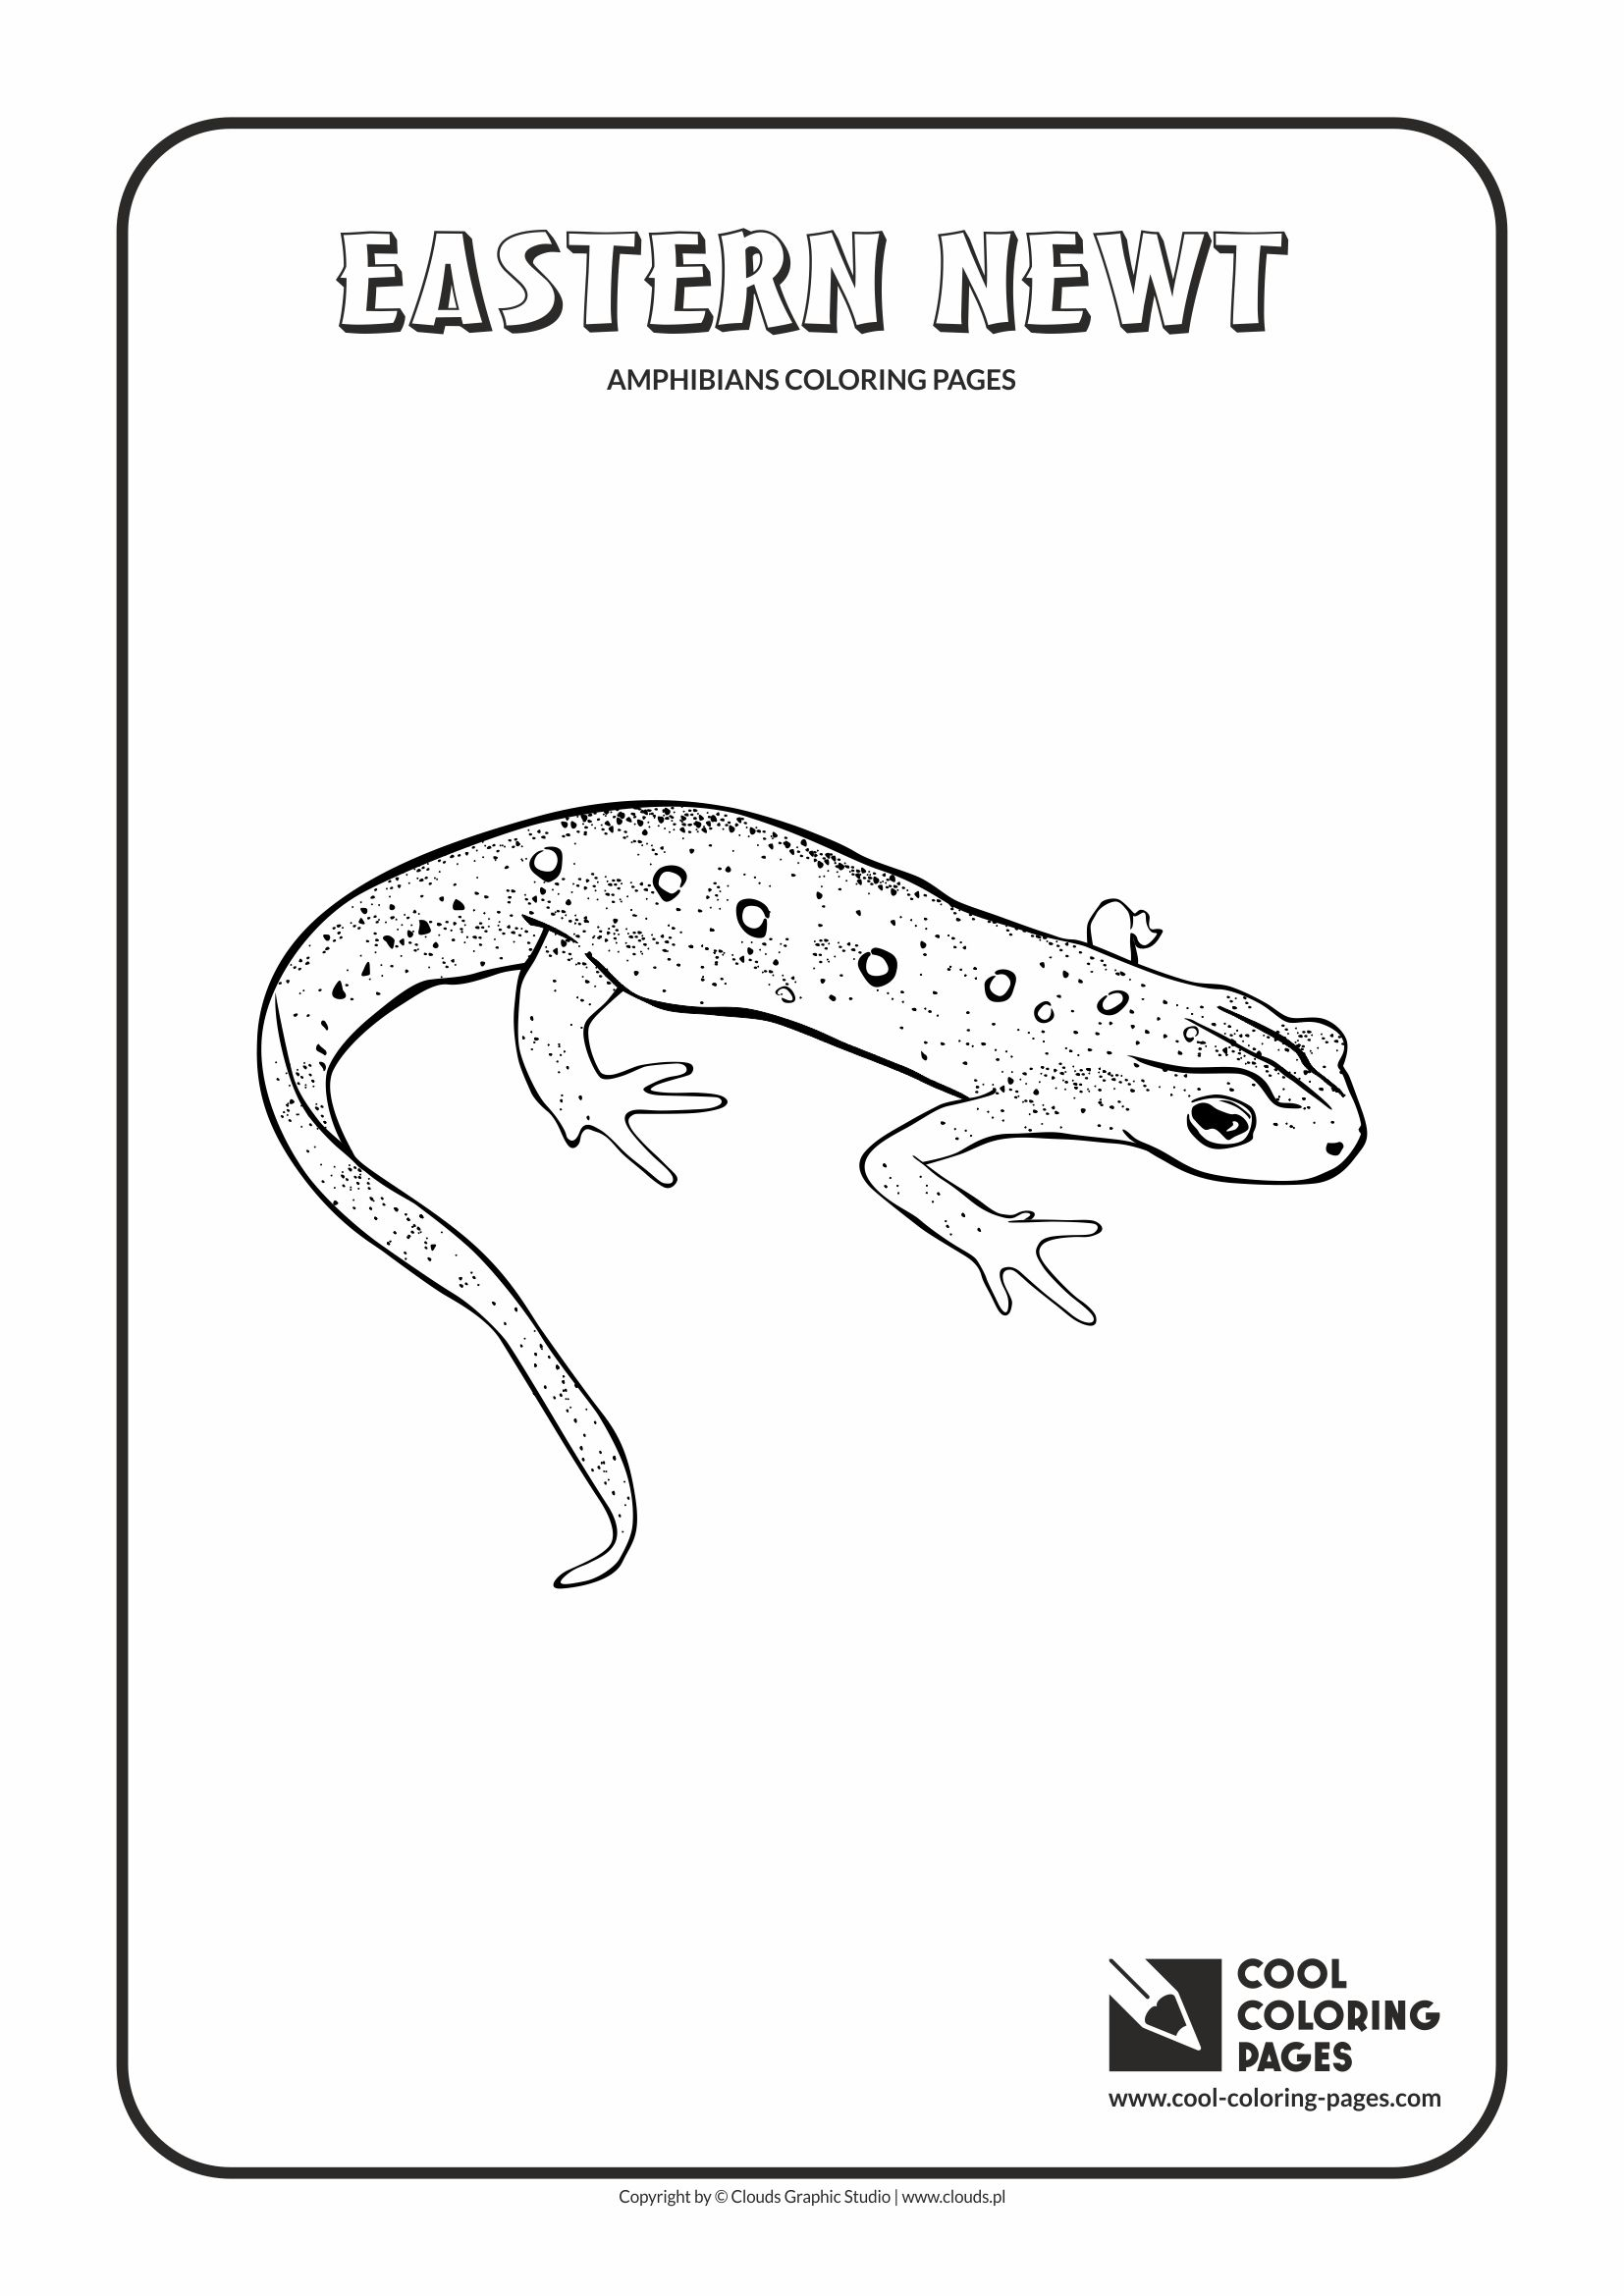 Eastern Newt coloring, Download Eastern Newt coloring for